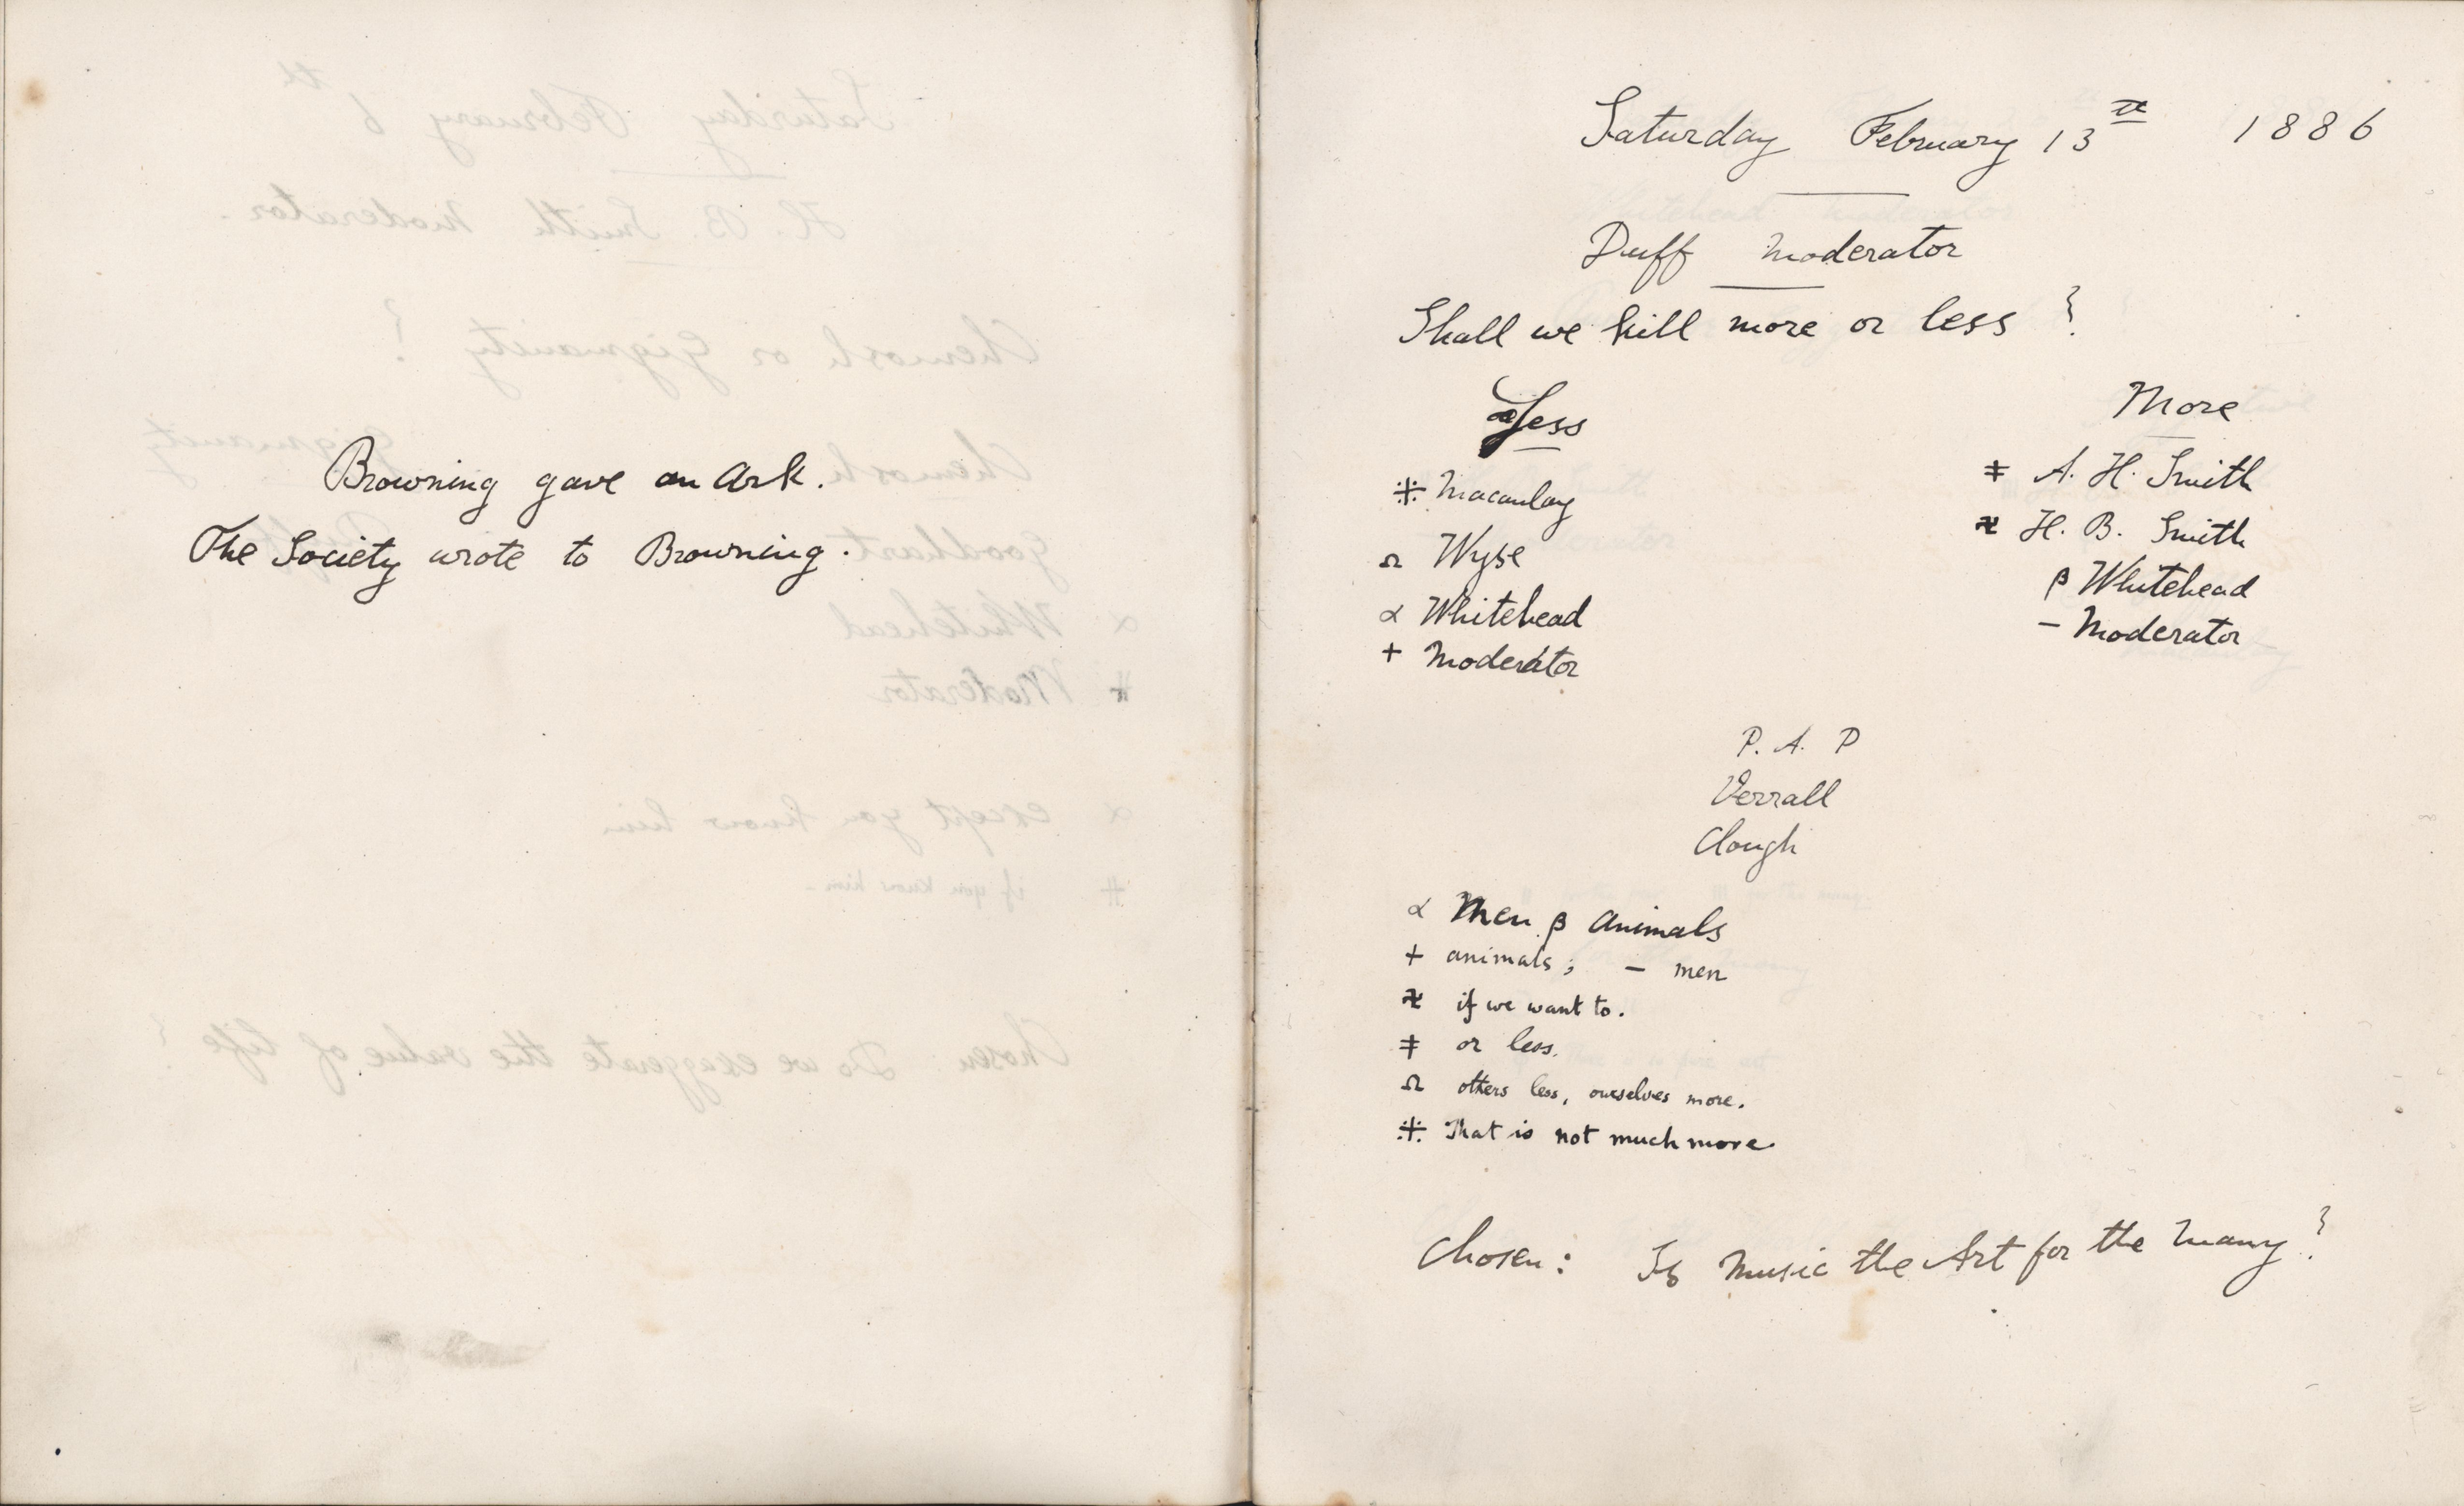 Minutes of a meeting at which Oscar Browning gave the Ark. [KCAS/39/1/10, 13 February 1886]